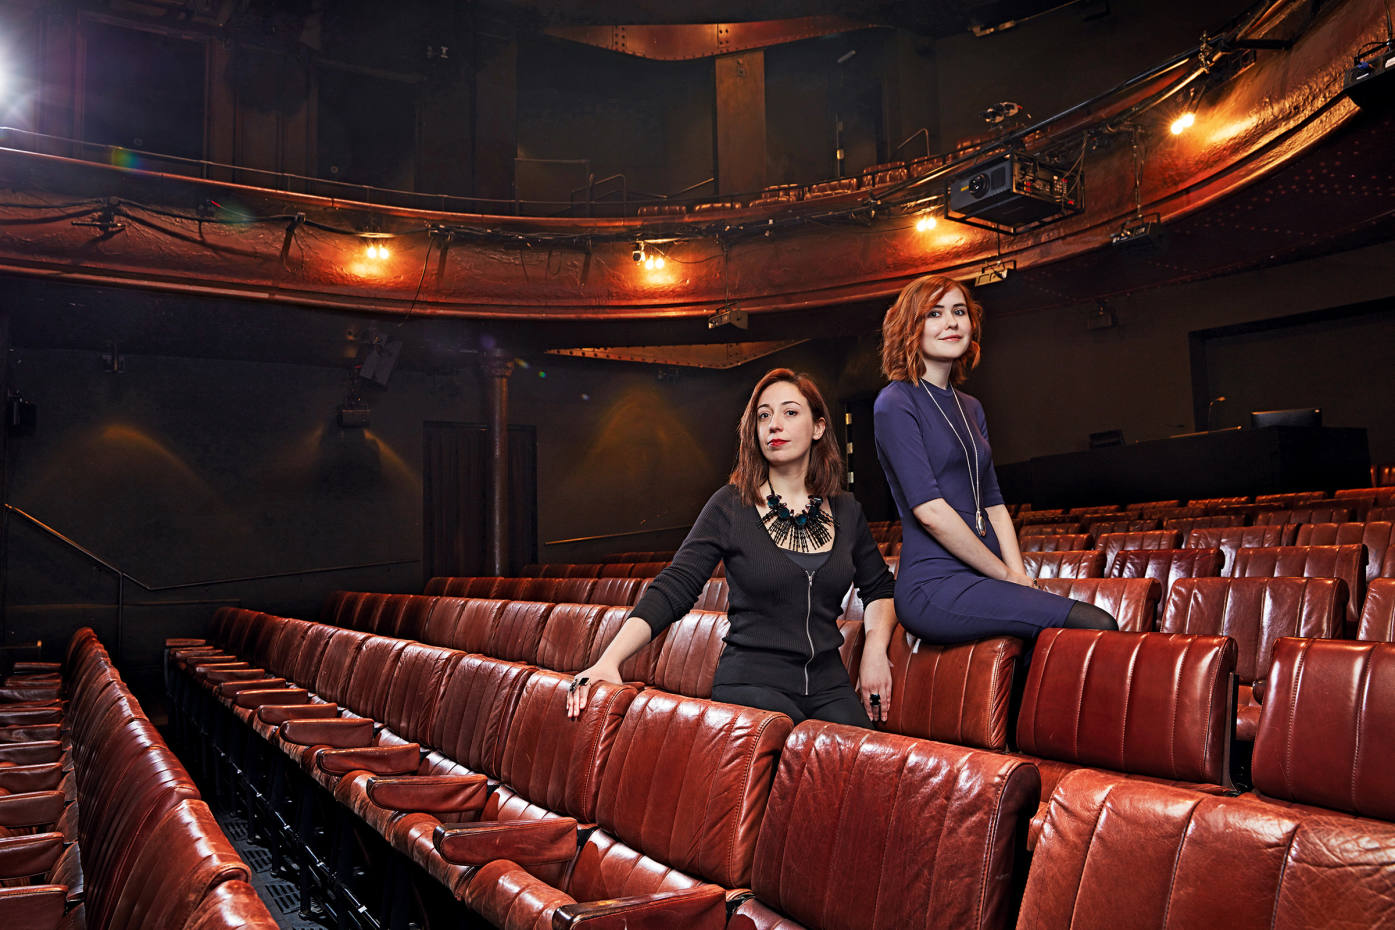 Ana Inès Jabares-Pita (left), winner of The Linbury Prize for Stage Design, and Katherine Soper, winner of The Bruntwood Prize for Playwriting, both worked on Wish List, which was performed at London's Royal Court